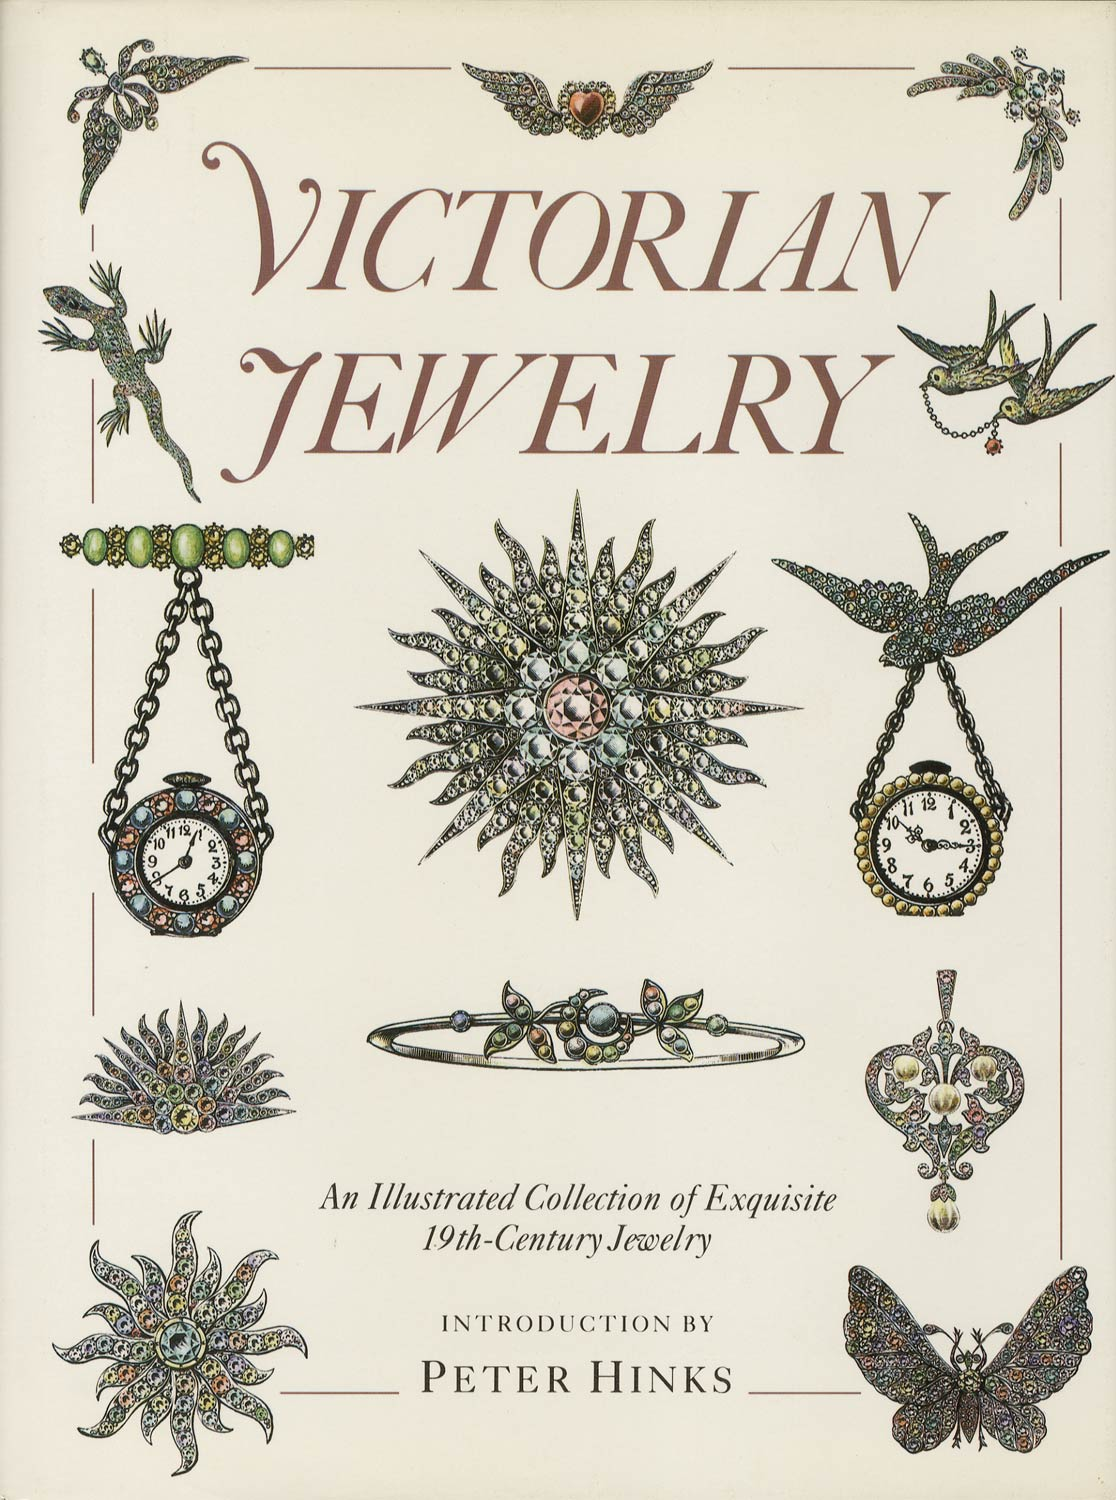 Victorian Jewelry An Illustrated Collection of Exquisite 19th-Century Jewely